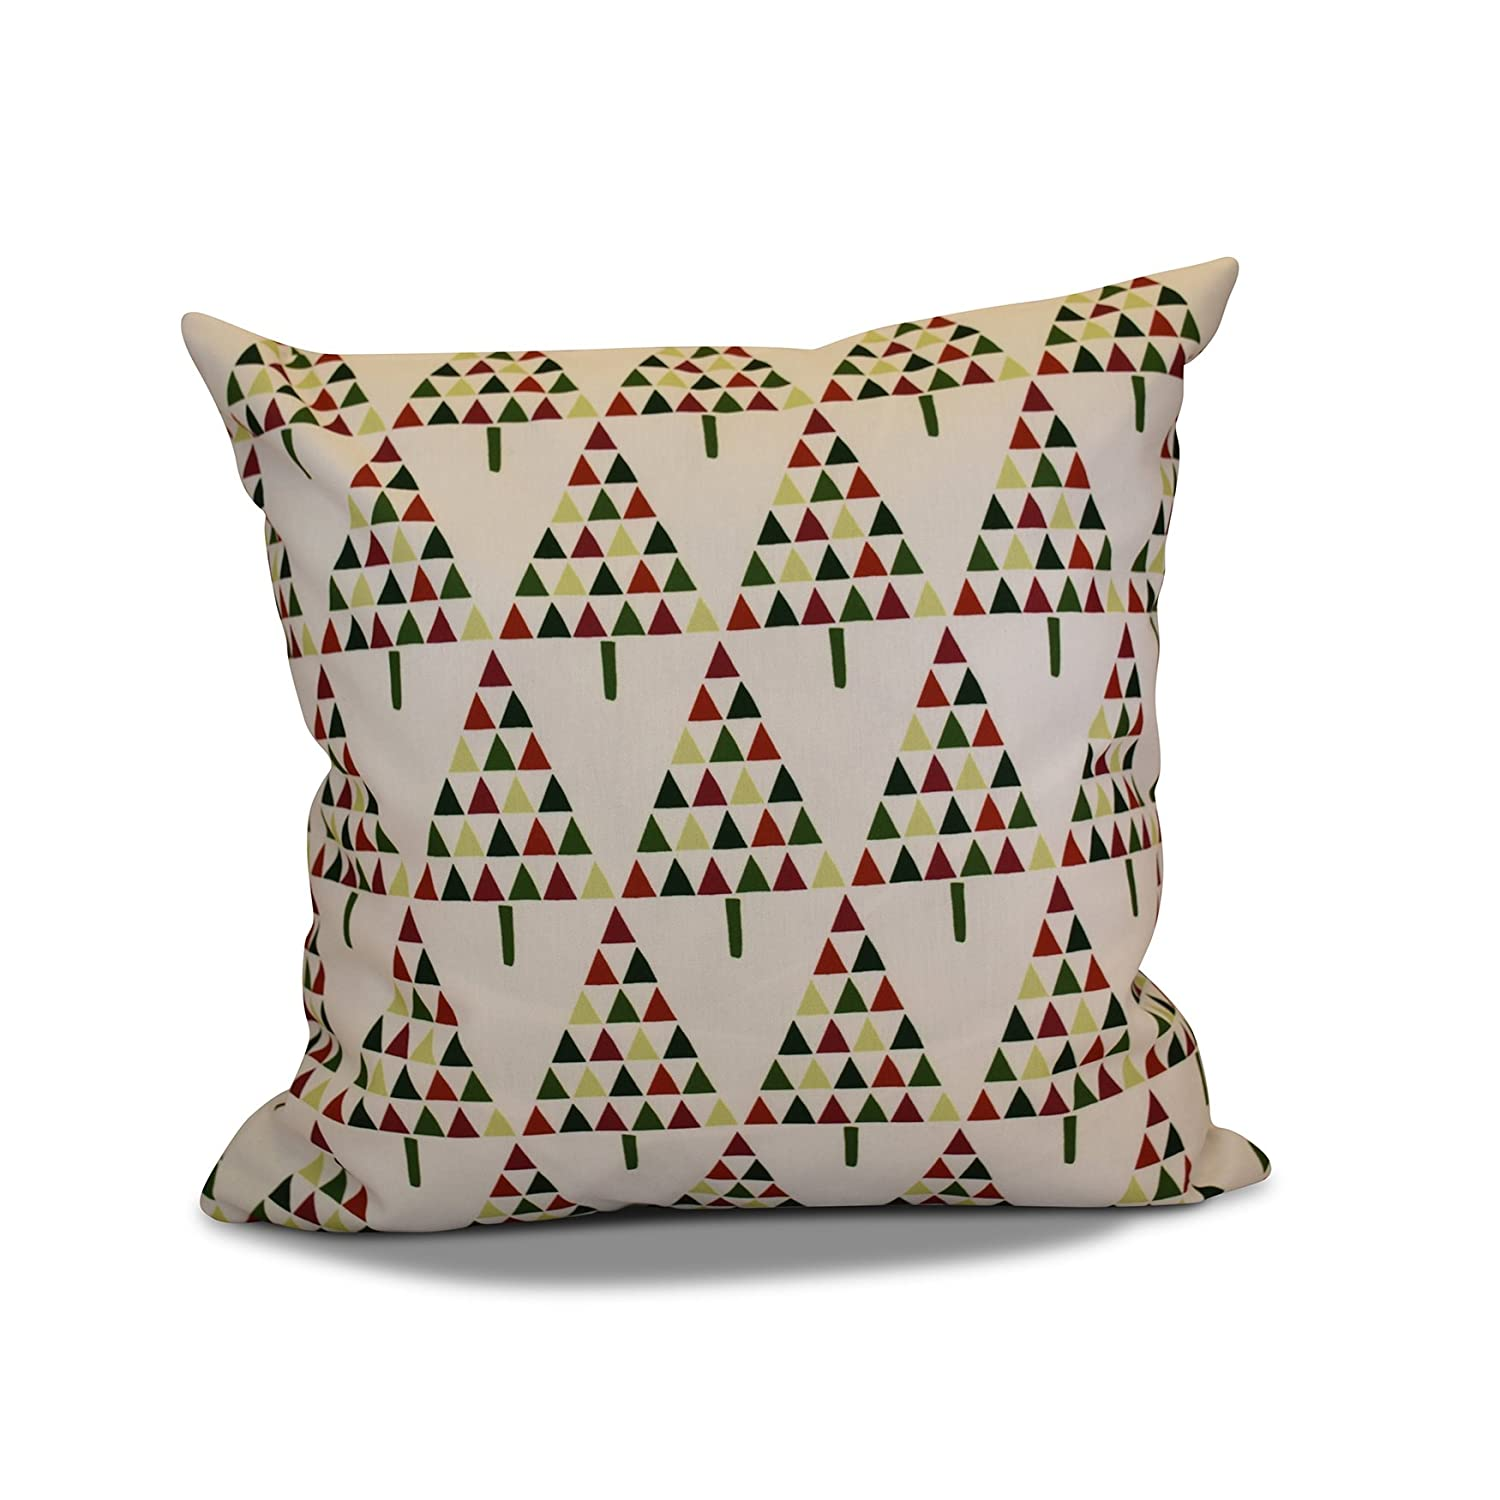 E by design O5PHGN704WH1GR10-16 Printed Outdoor Pillow